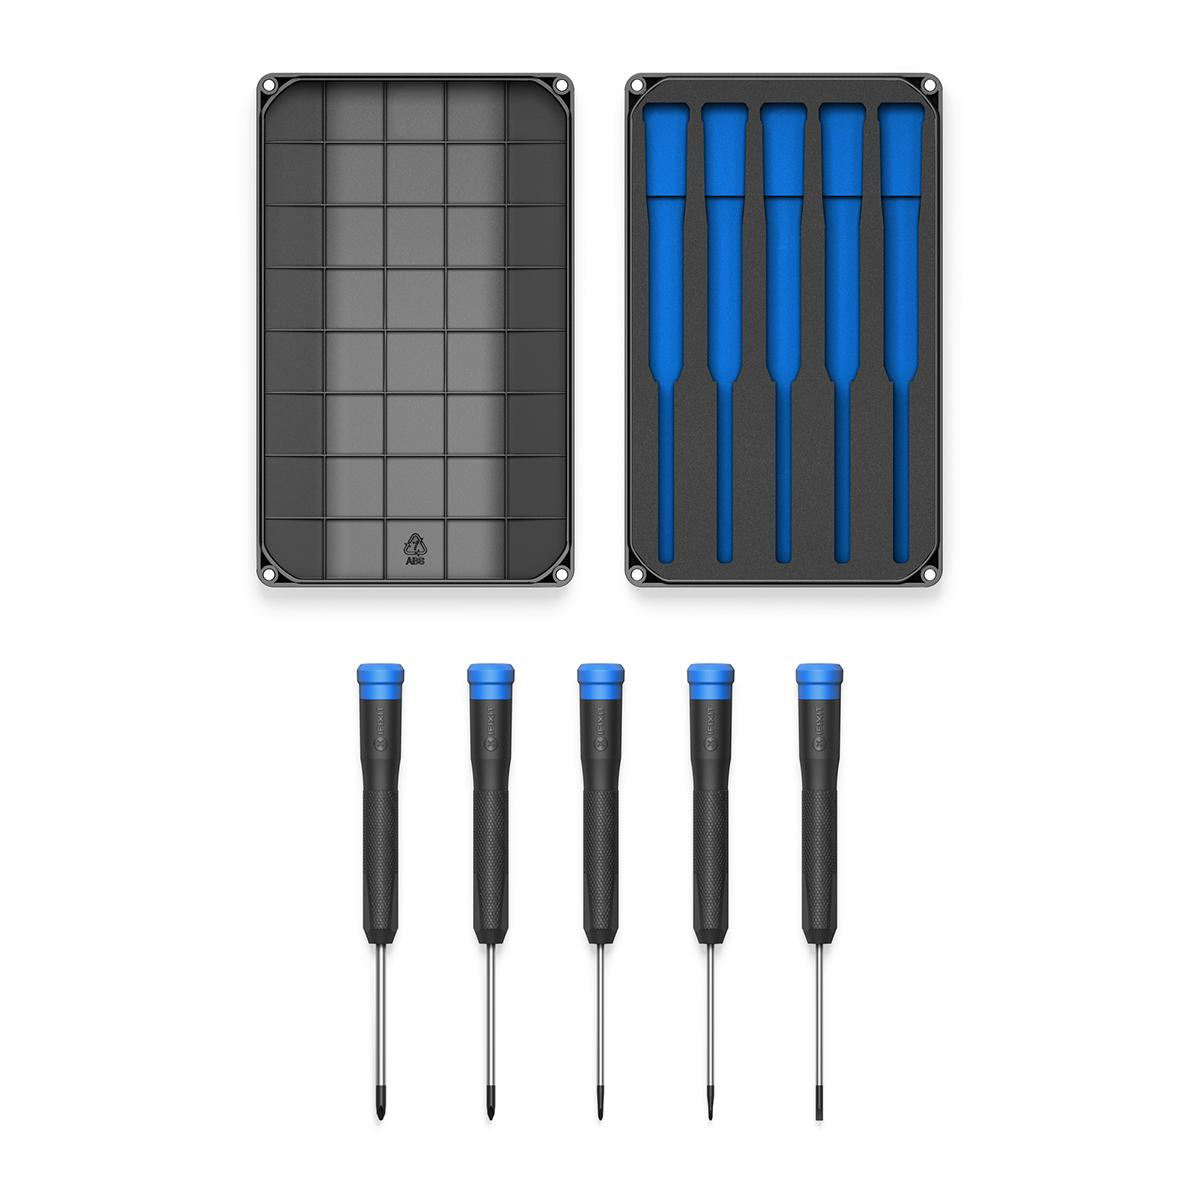 《在庫あり》iFixit Pro Tech Screwdriver Set 5-piece Standard [IF145-396-1]